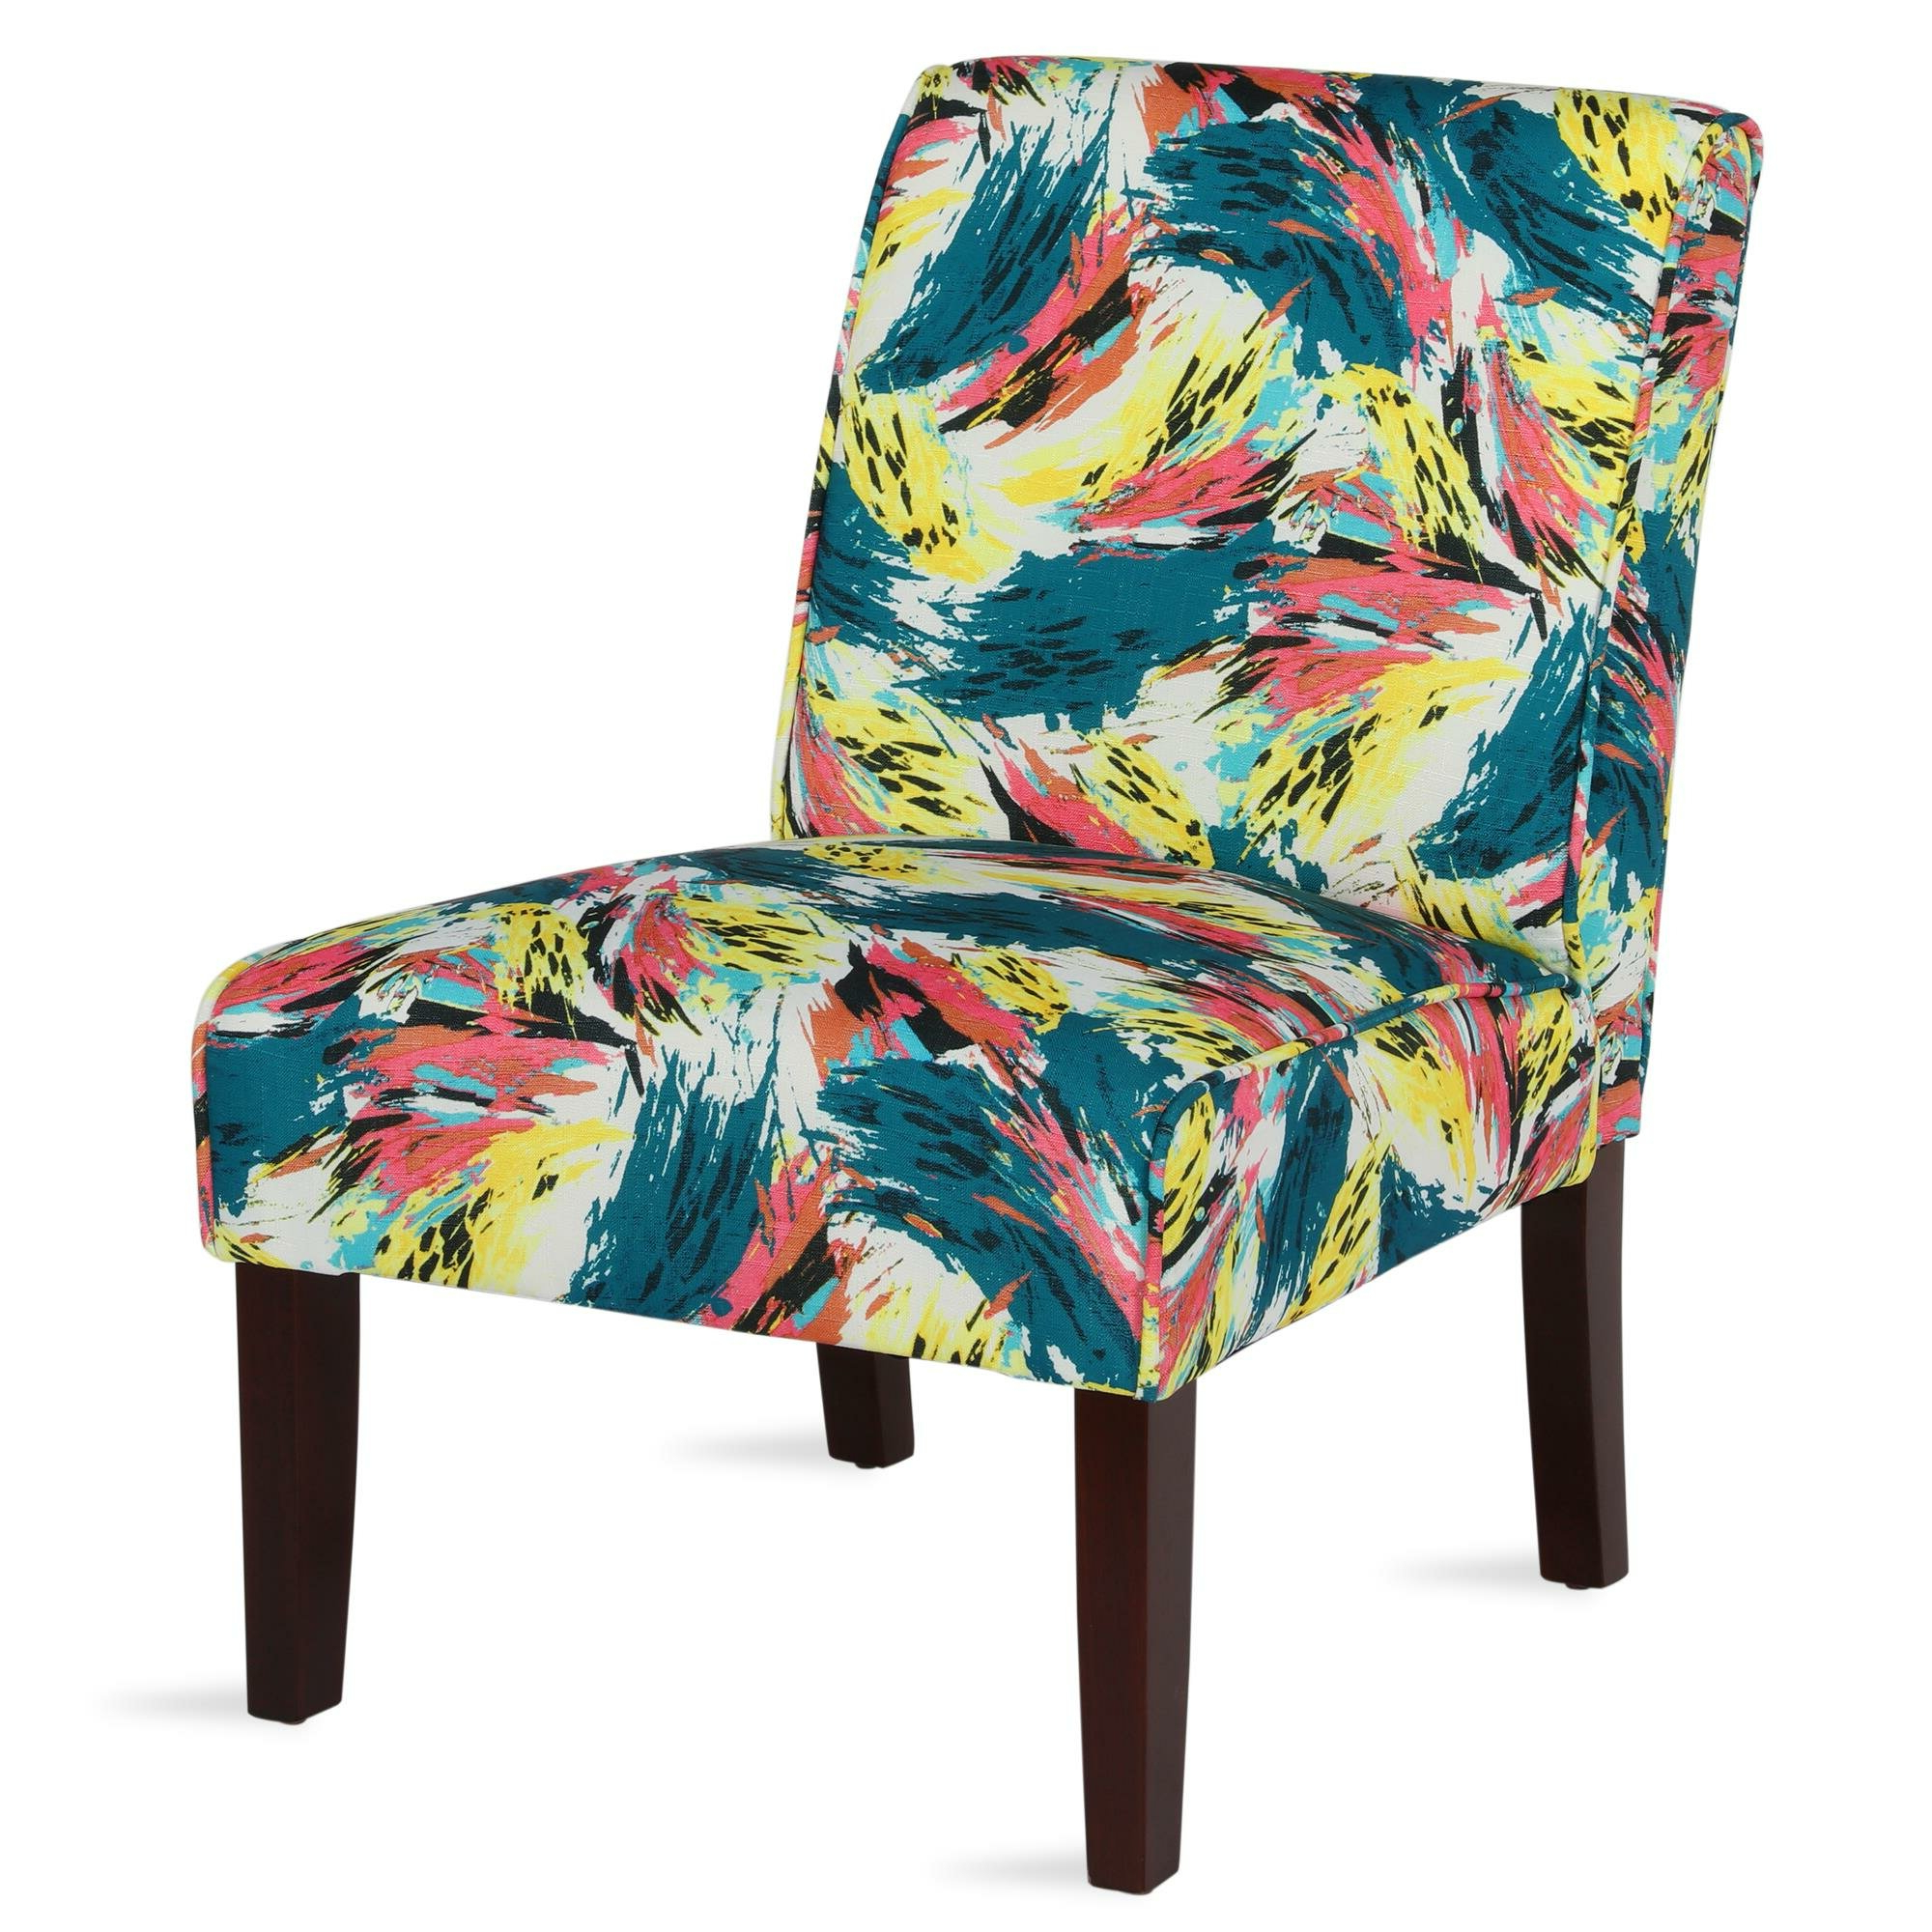 Wayfair Intended For Well Known Ansby Barrel Chairs (View 4 of 20)